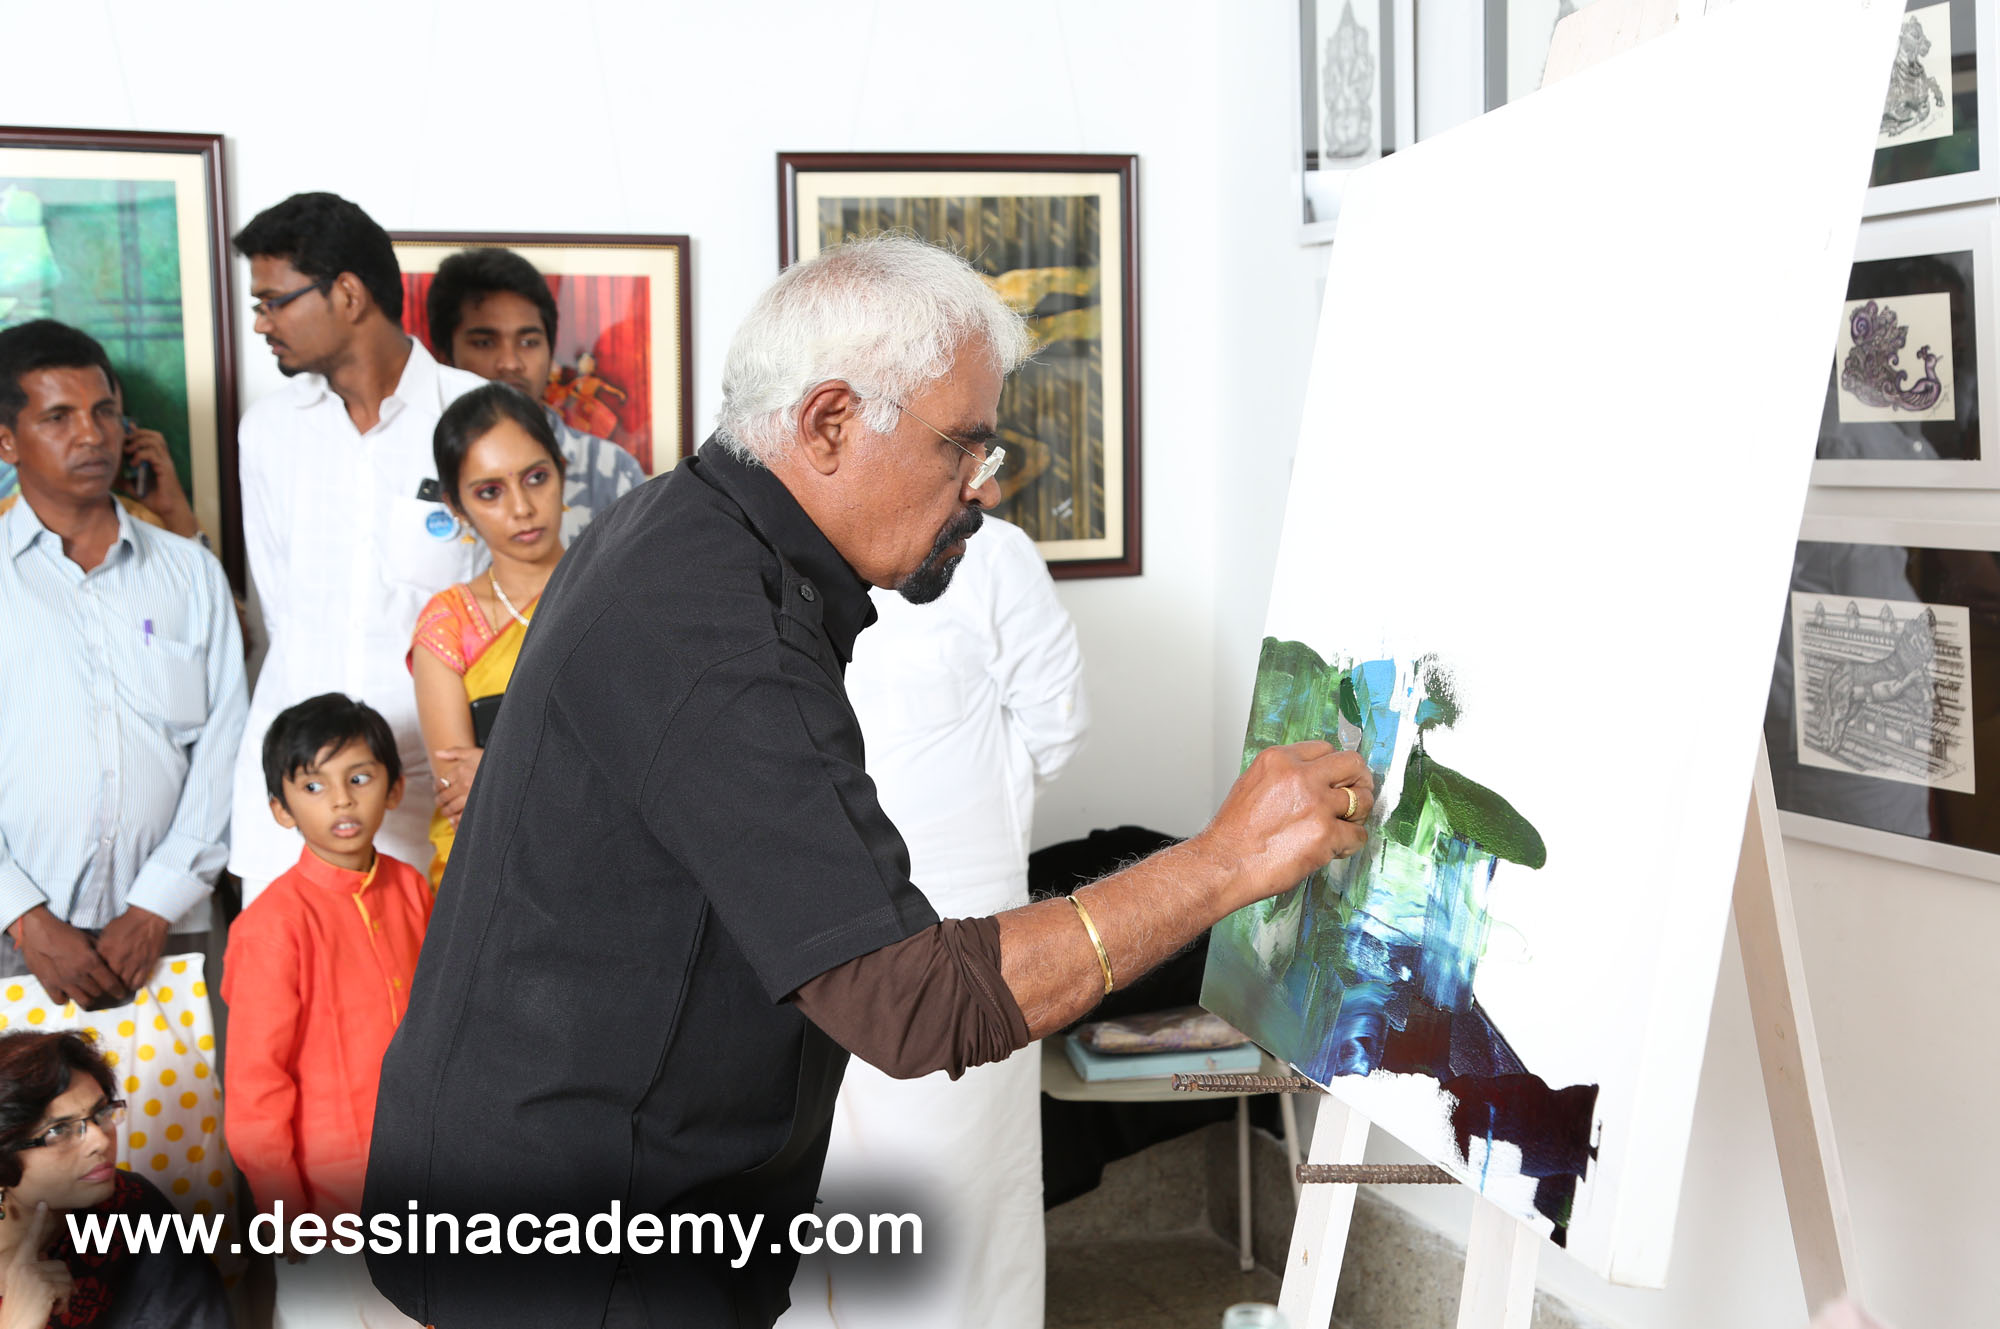 Dessin School of arts Event Gallery 2, oil painting School for adults in AdyarTime kids Pre-School